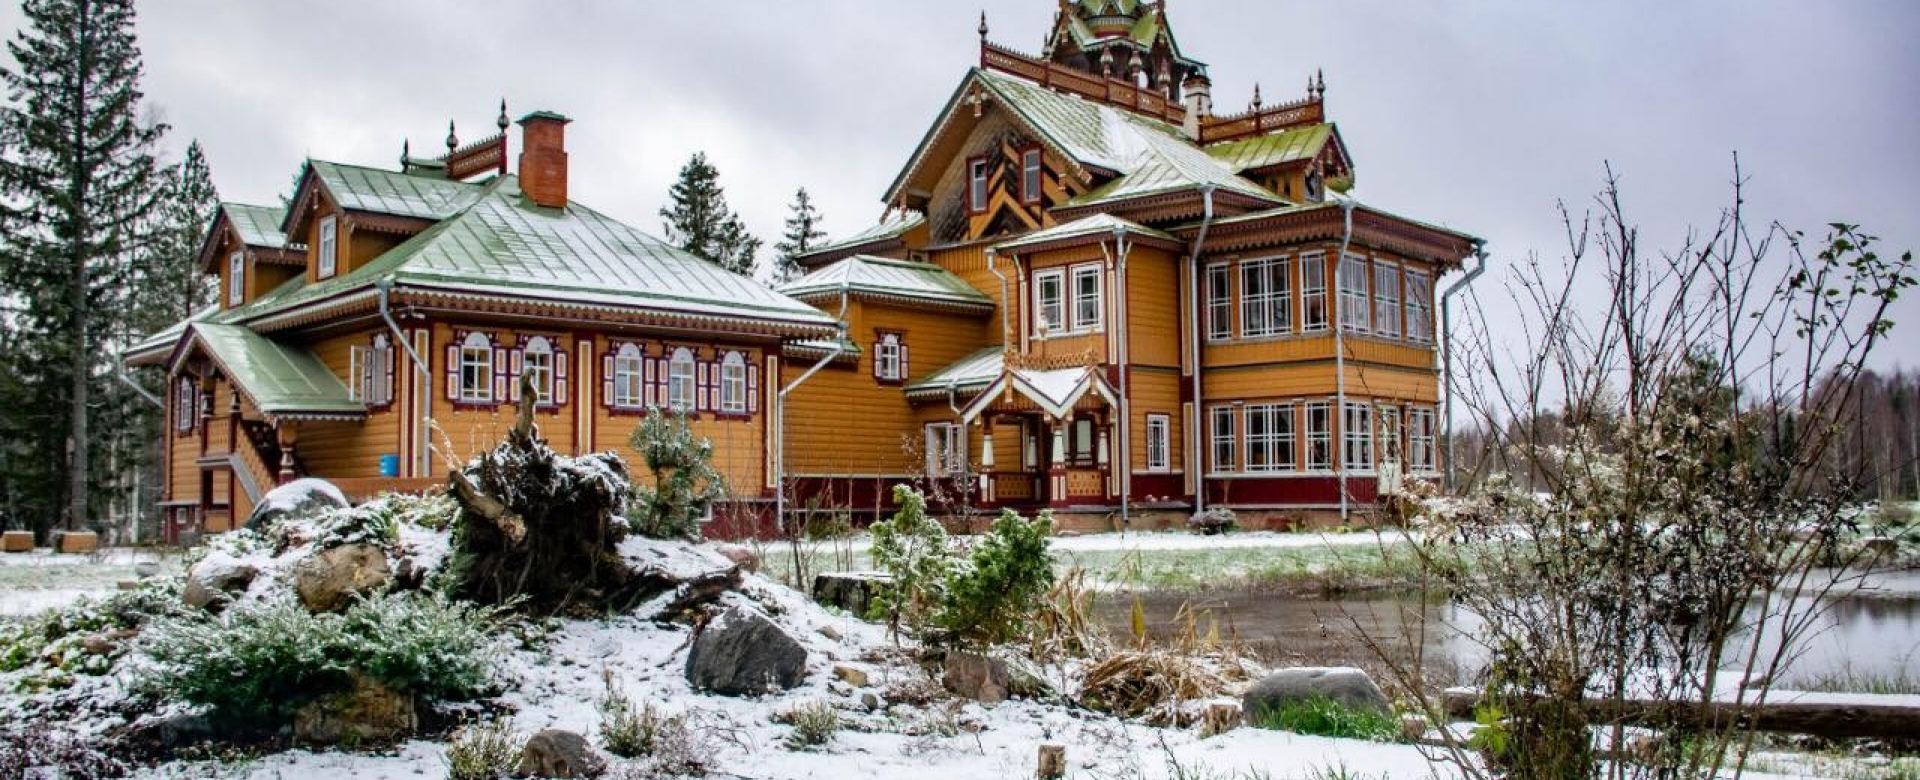 A Visit To The Russian Terem In The Woods